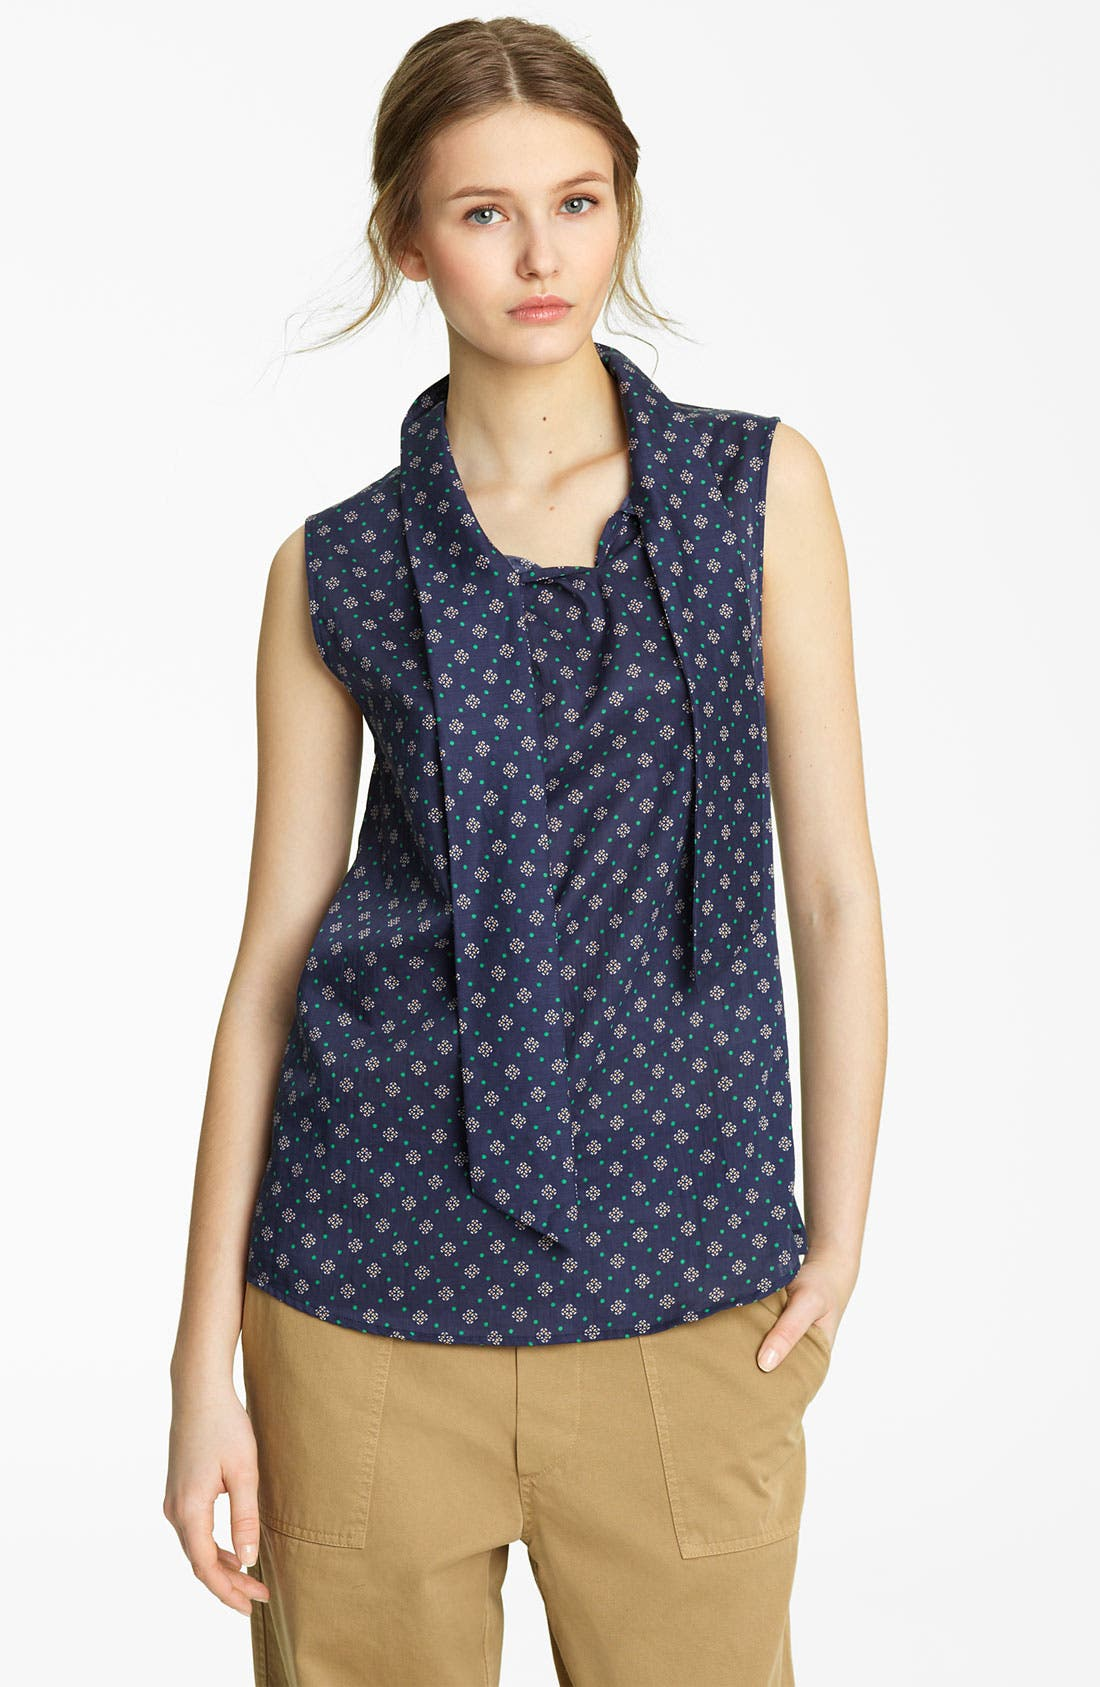 Main Image - Band of Outsiders Tie Neck Print Top